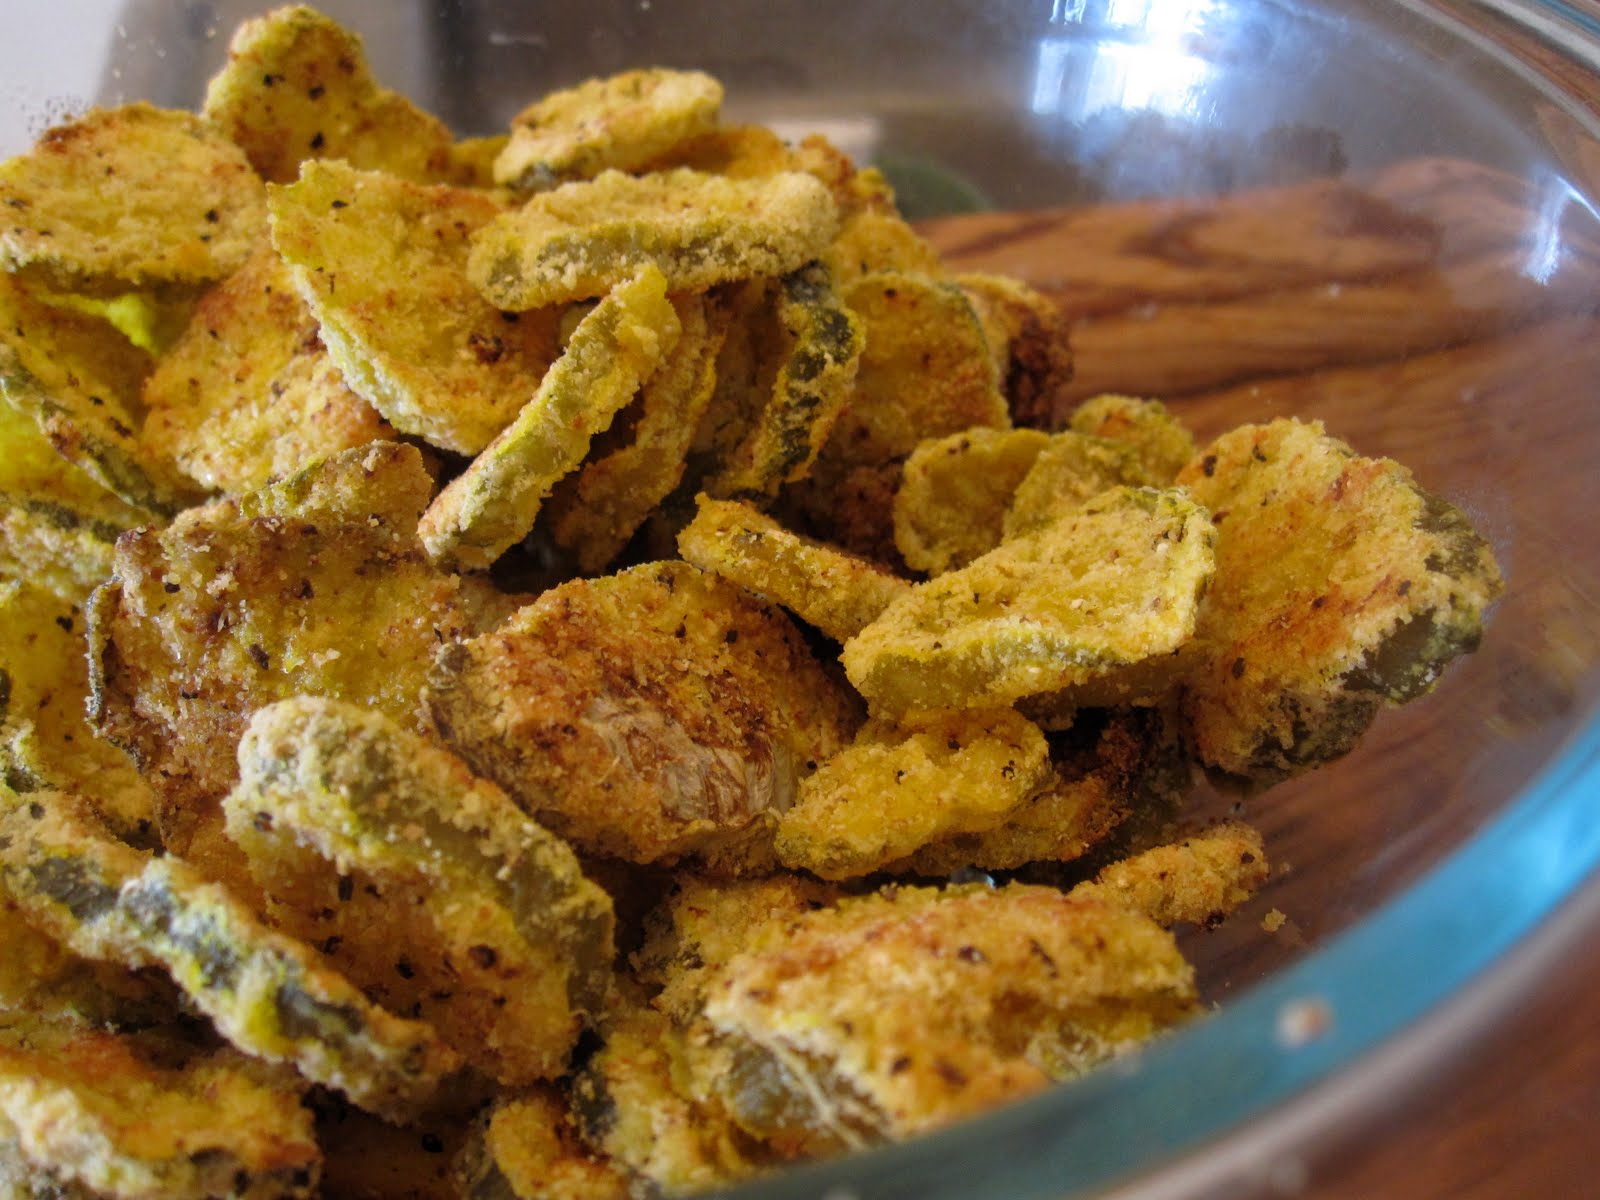 Just Putzing Around the Kitchen: Oven-Fried Pickles